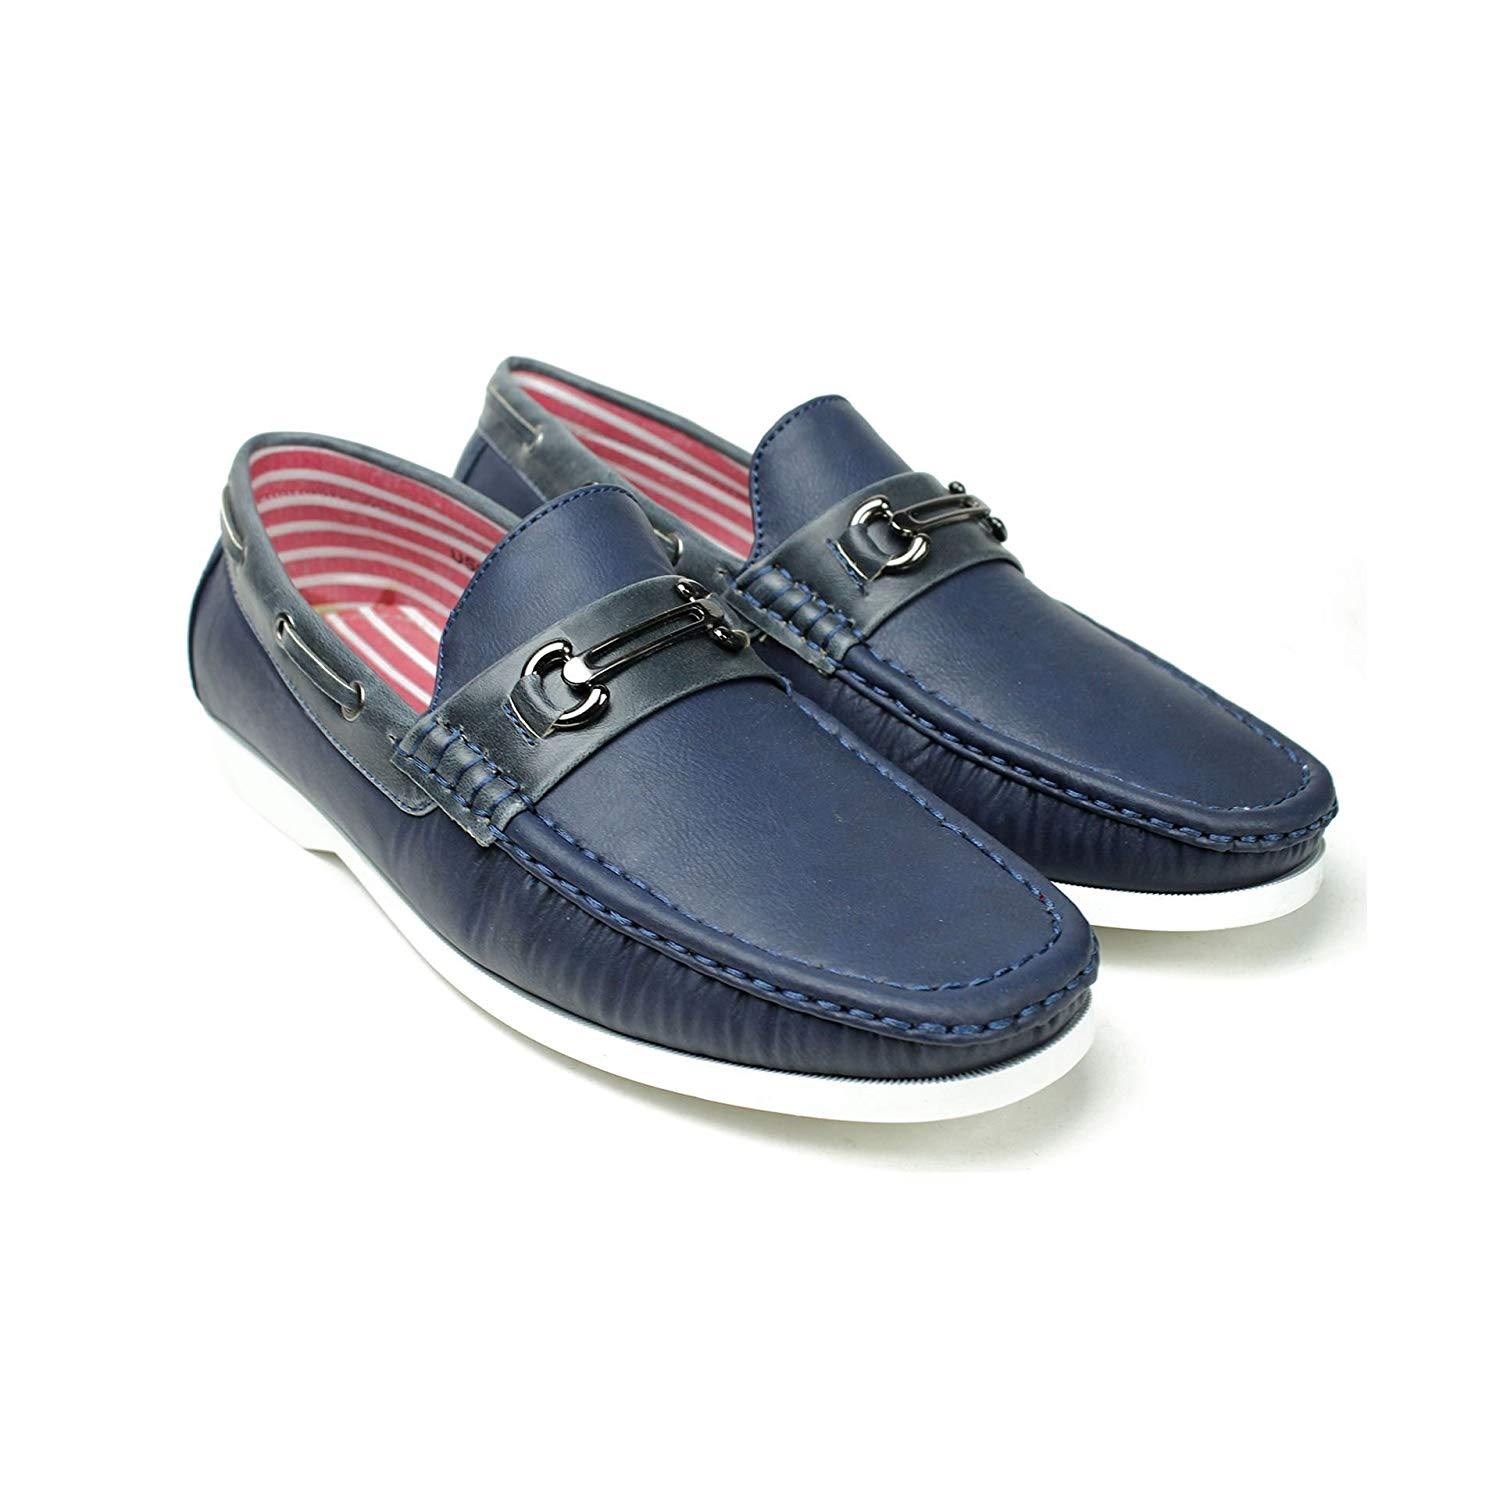 CITI SHOES Mens Casual Moccasins Driving Shoes186112